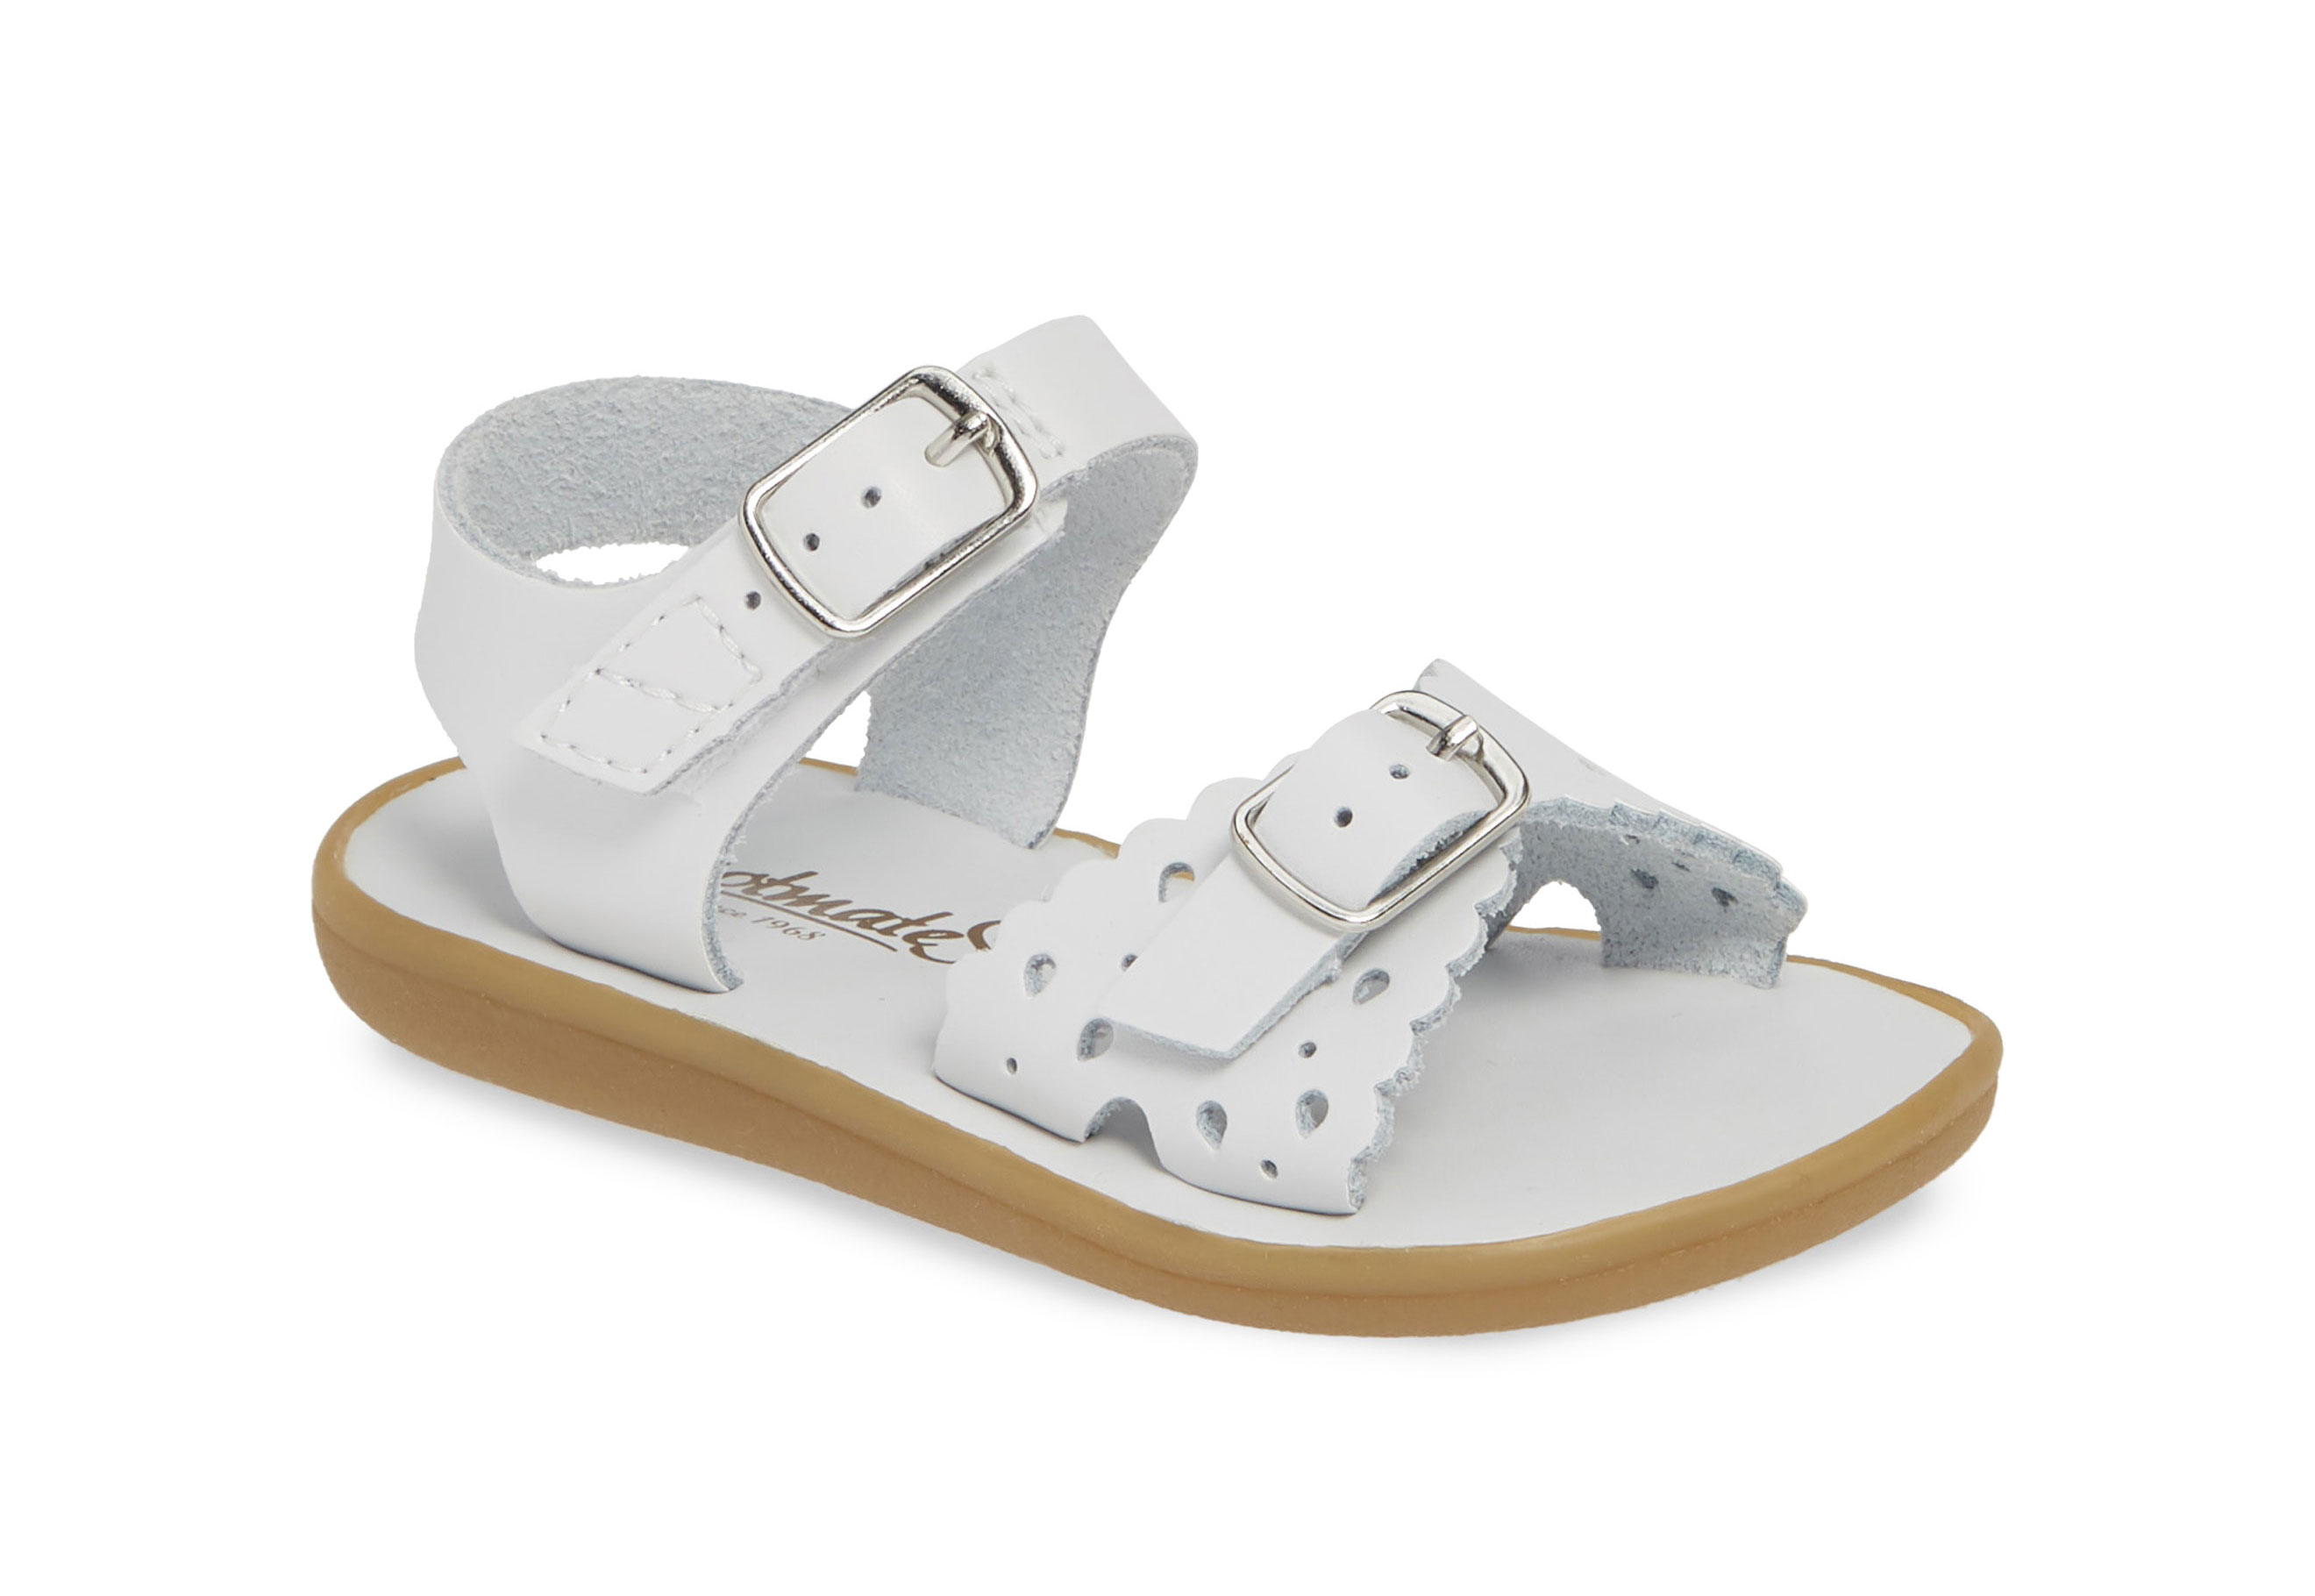 Footmates Arie Waterproof Sandal